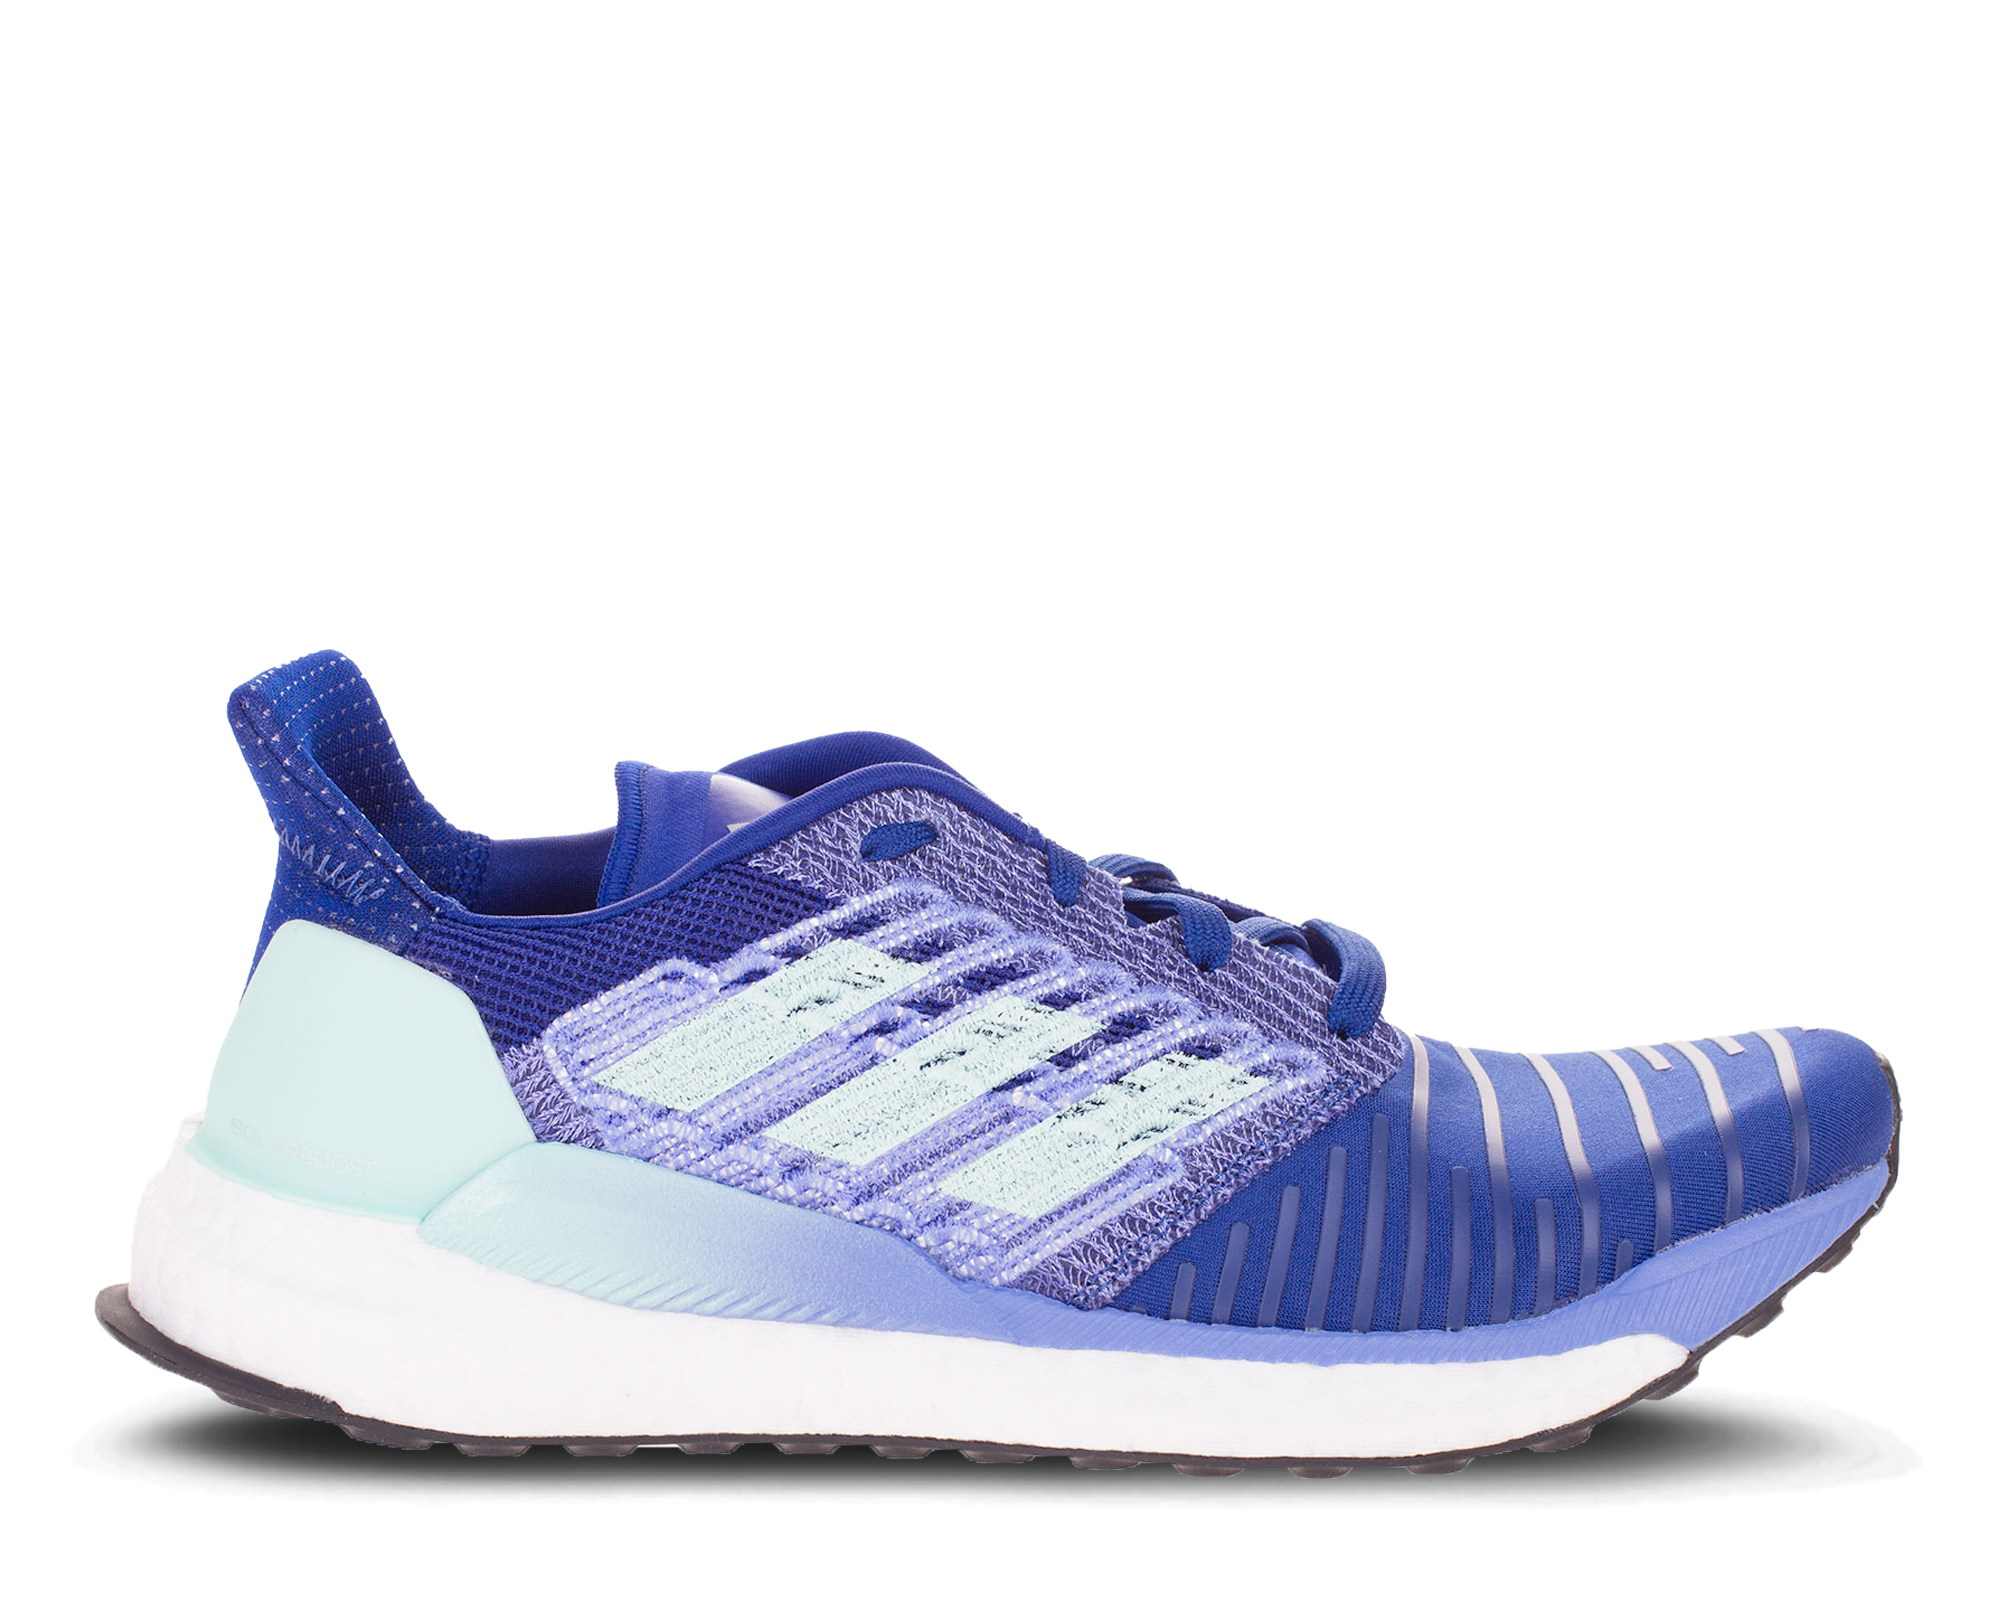 adidas SolarBOOST dames